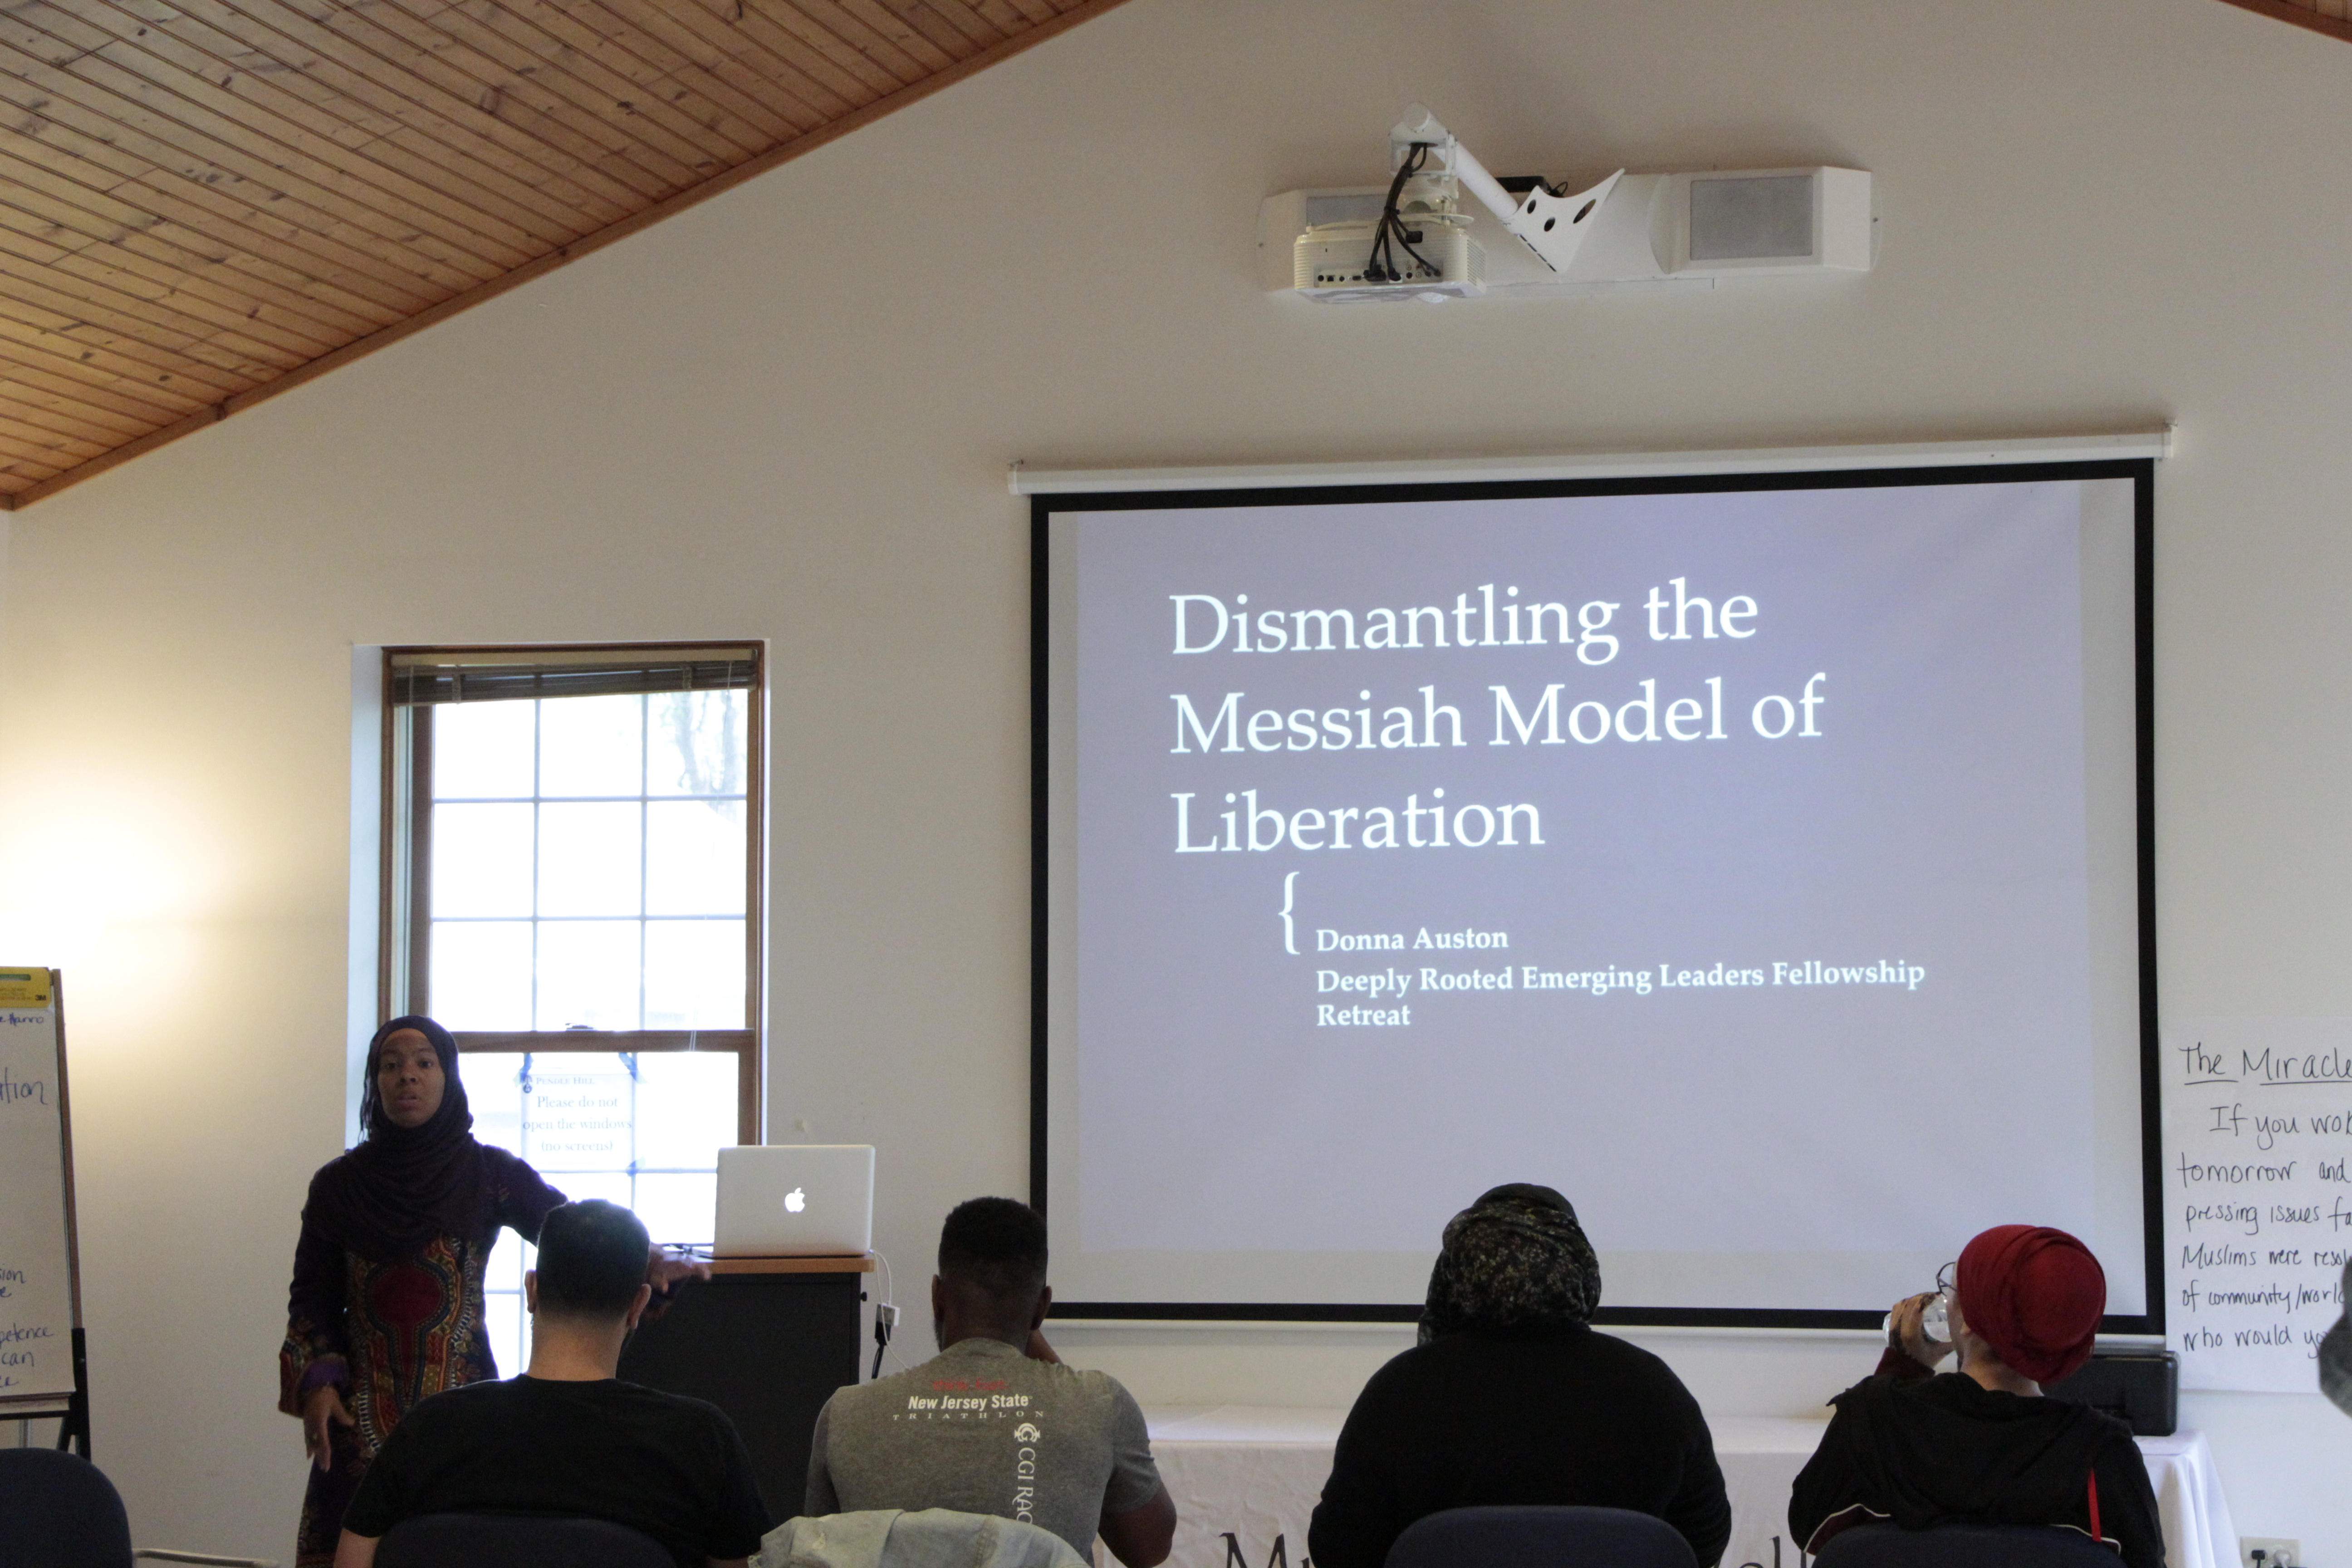 Dismantling Messiah Model